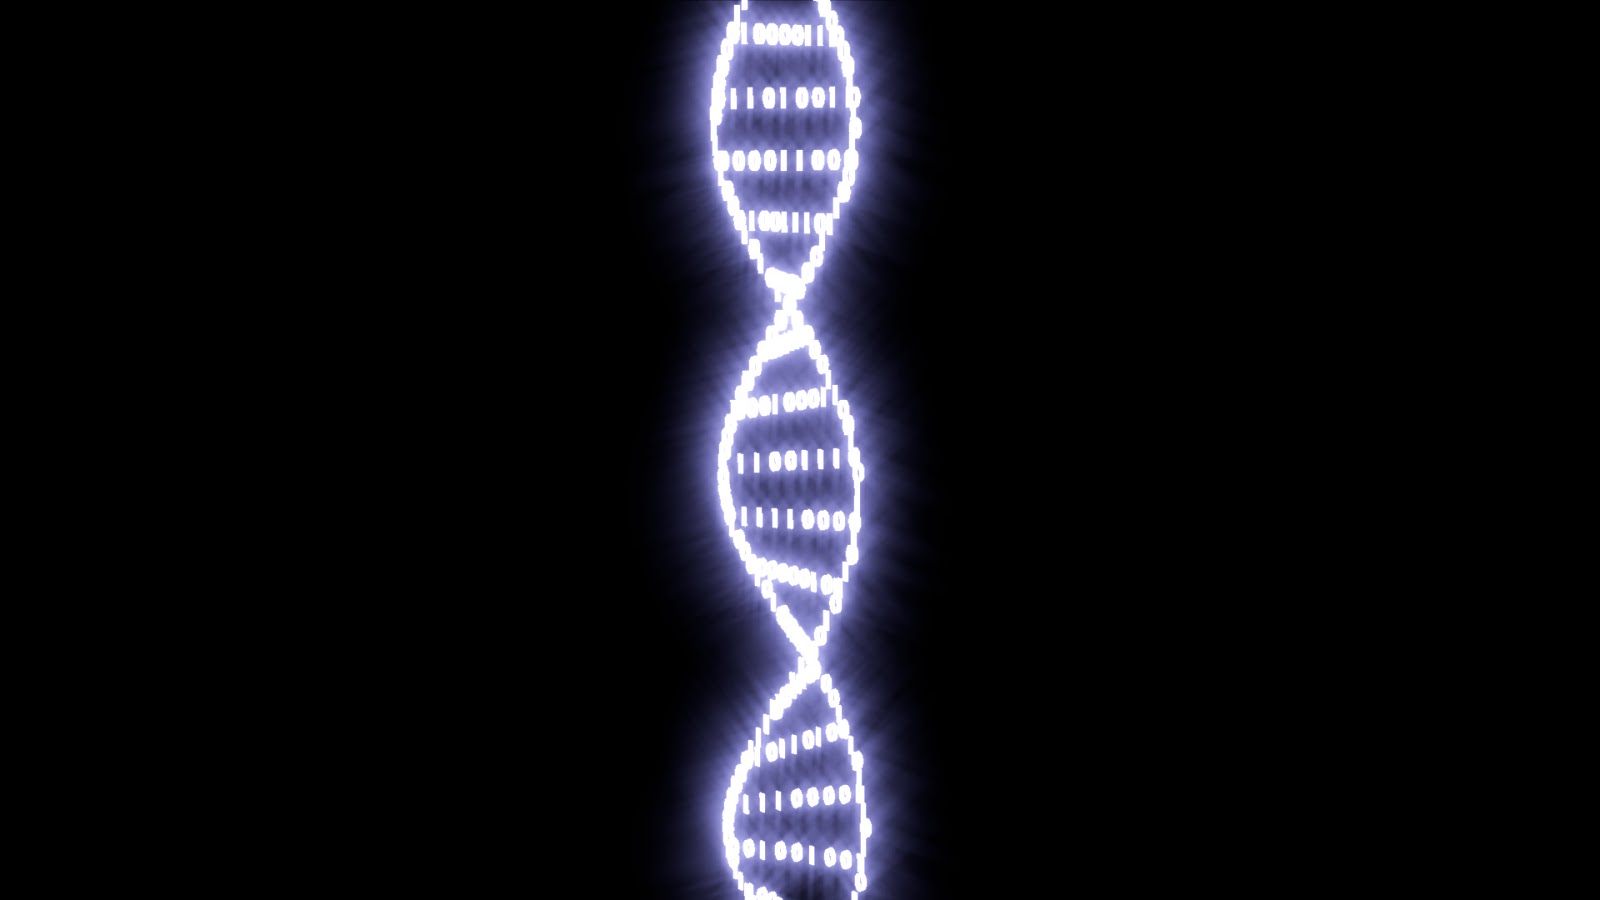 Dna Double Helix Wallpaper A binary double helix or 1600x900